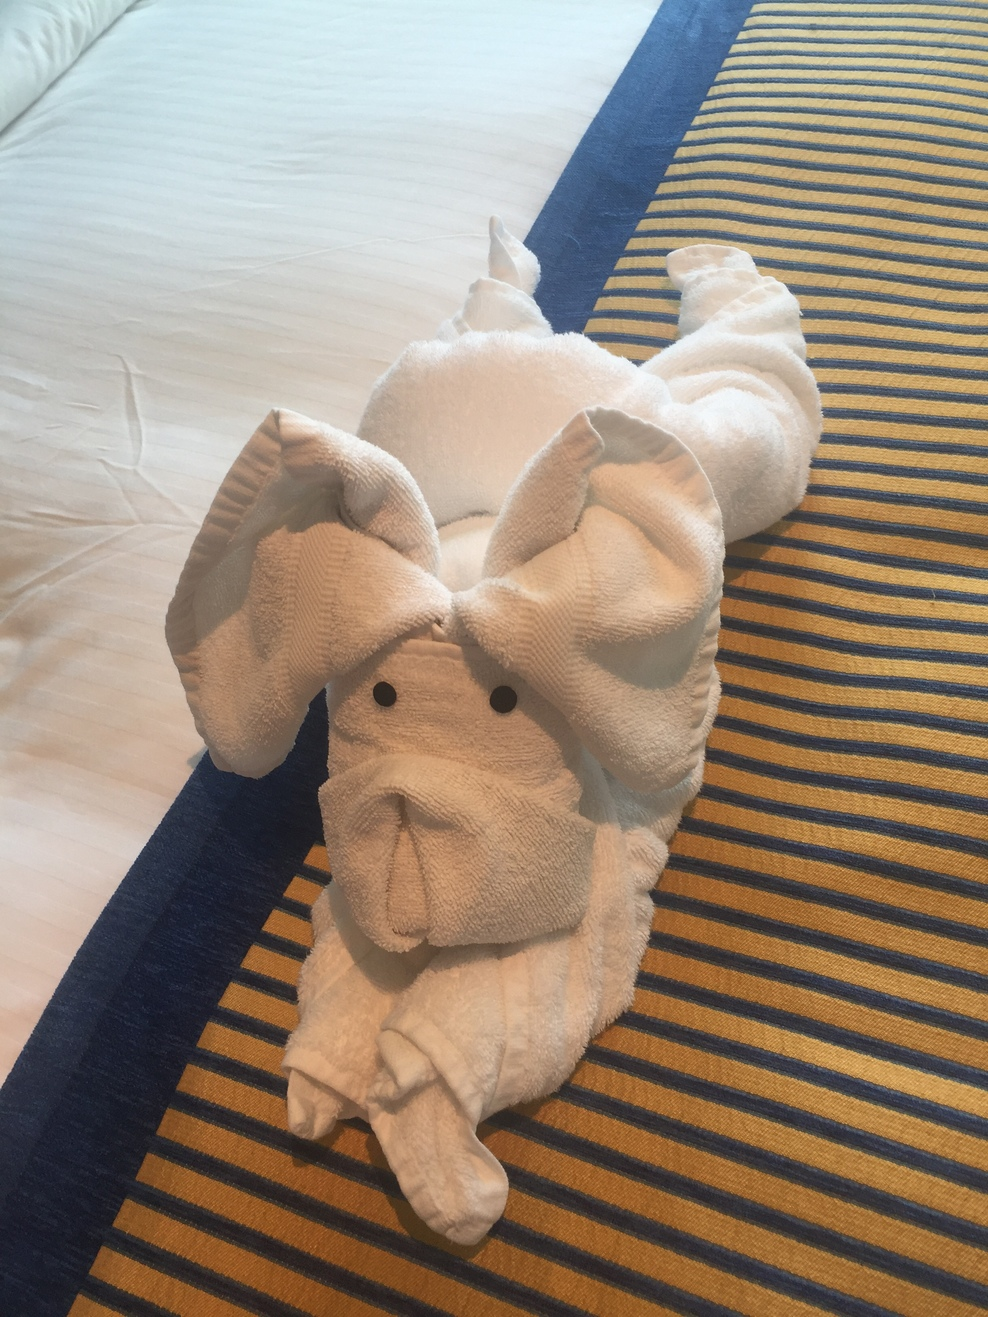 Towel animal in our room